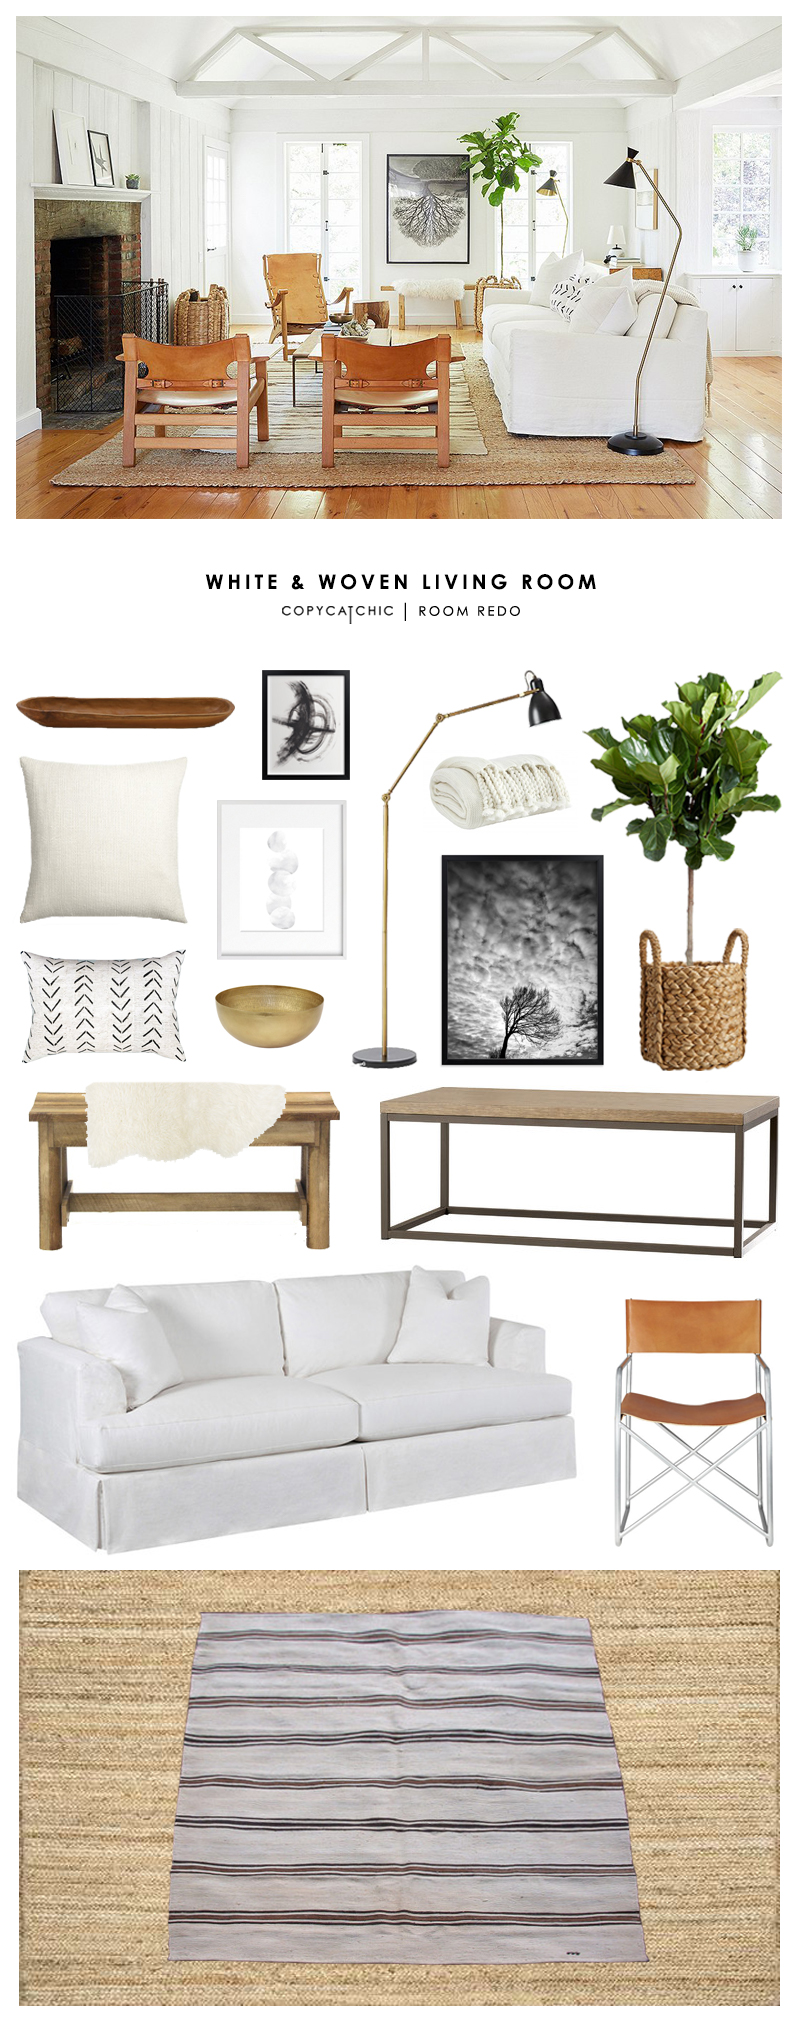 Copy Cat Chic Room Redo | White and Woven Living Room - copycatchic